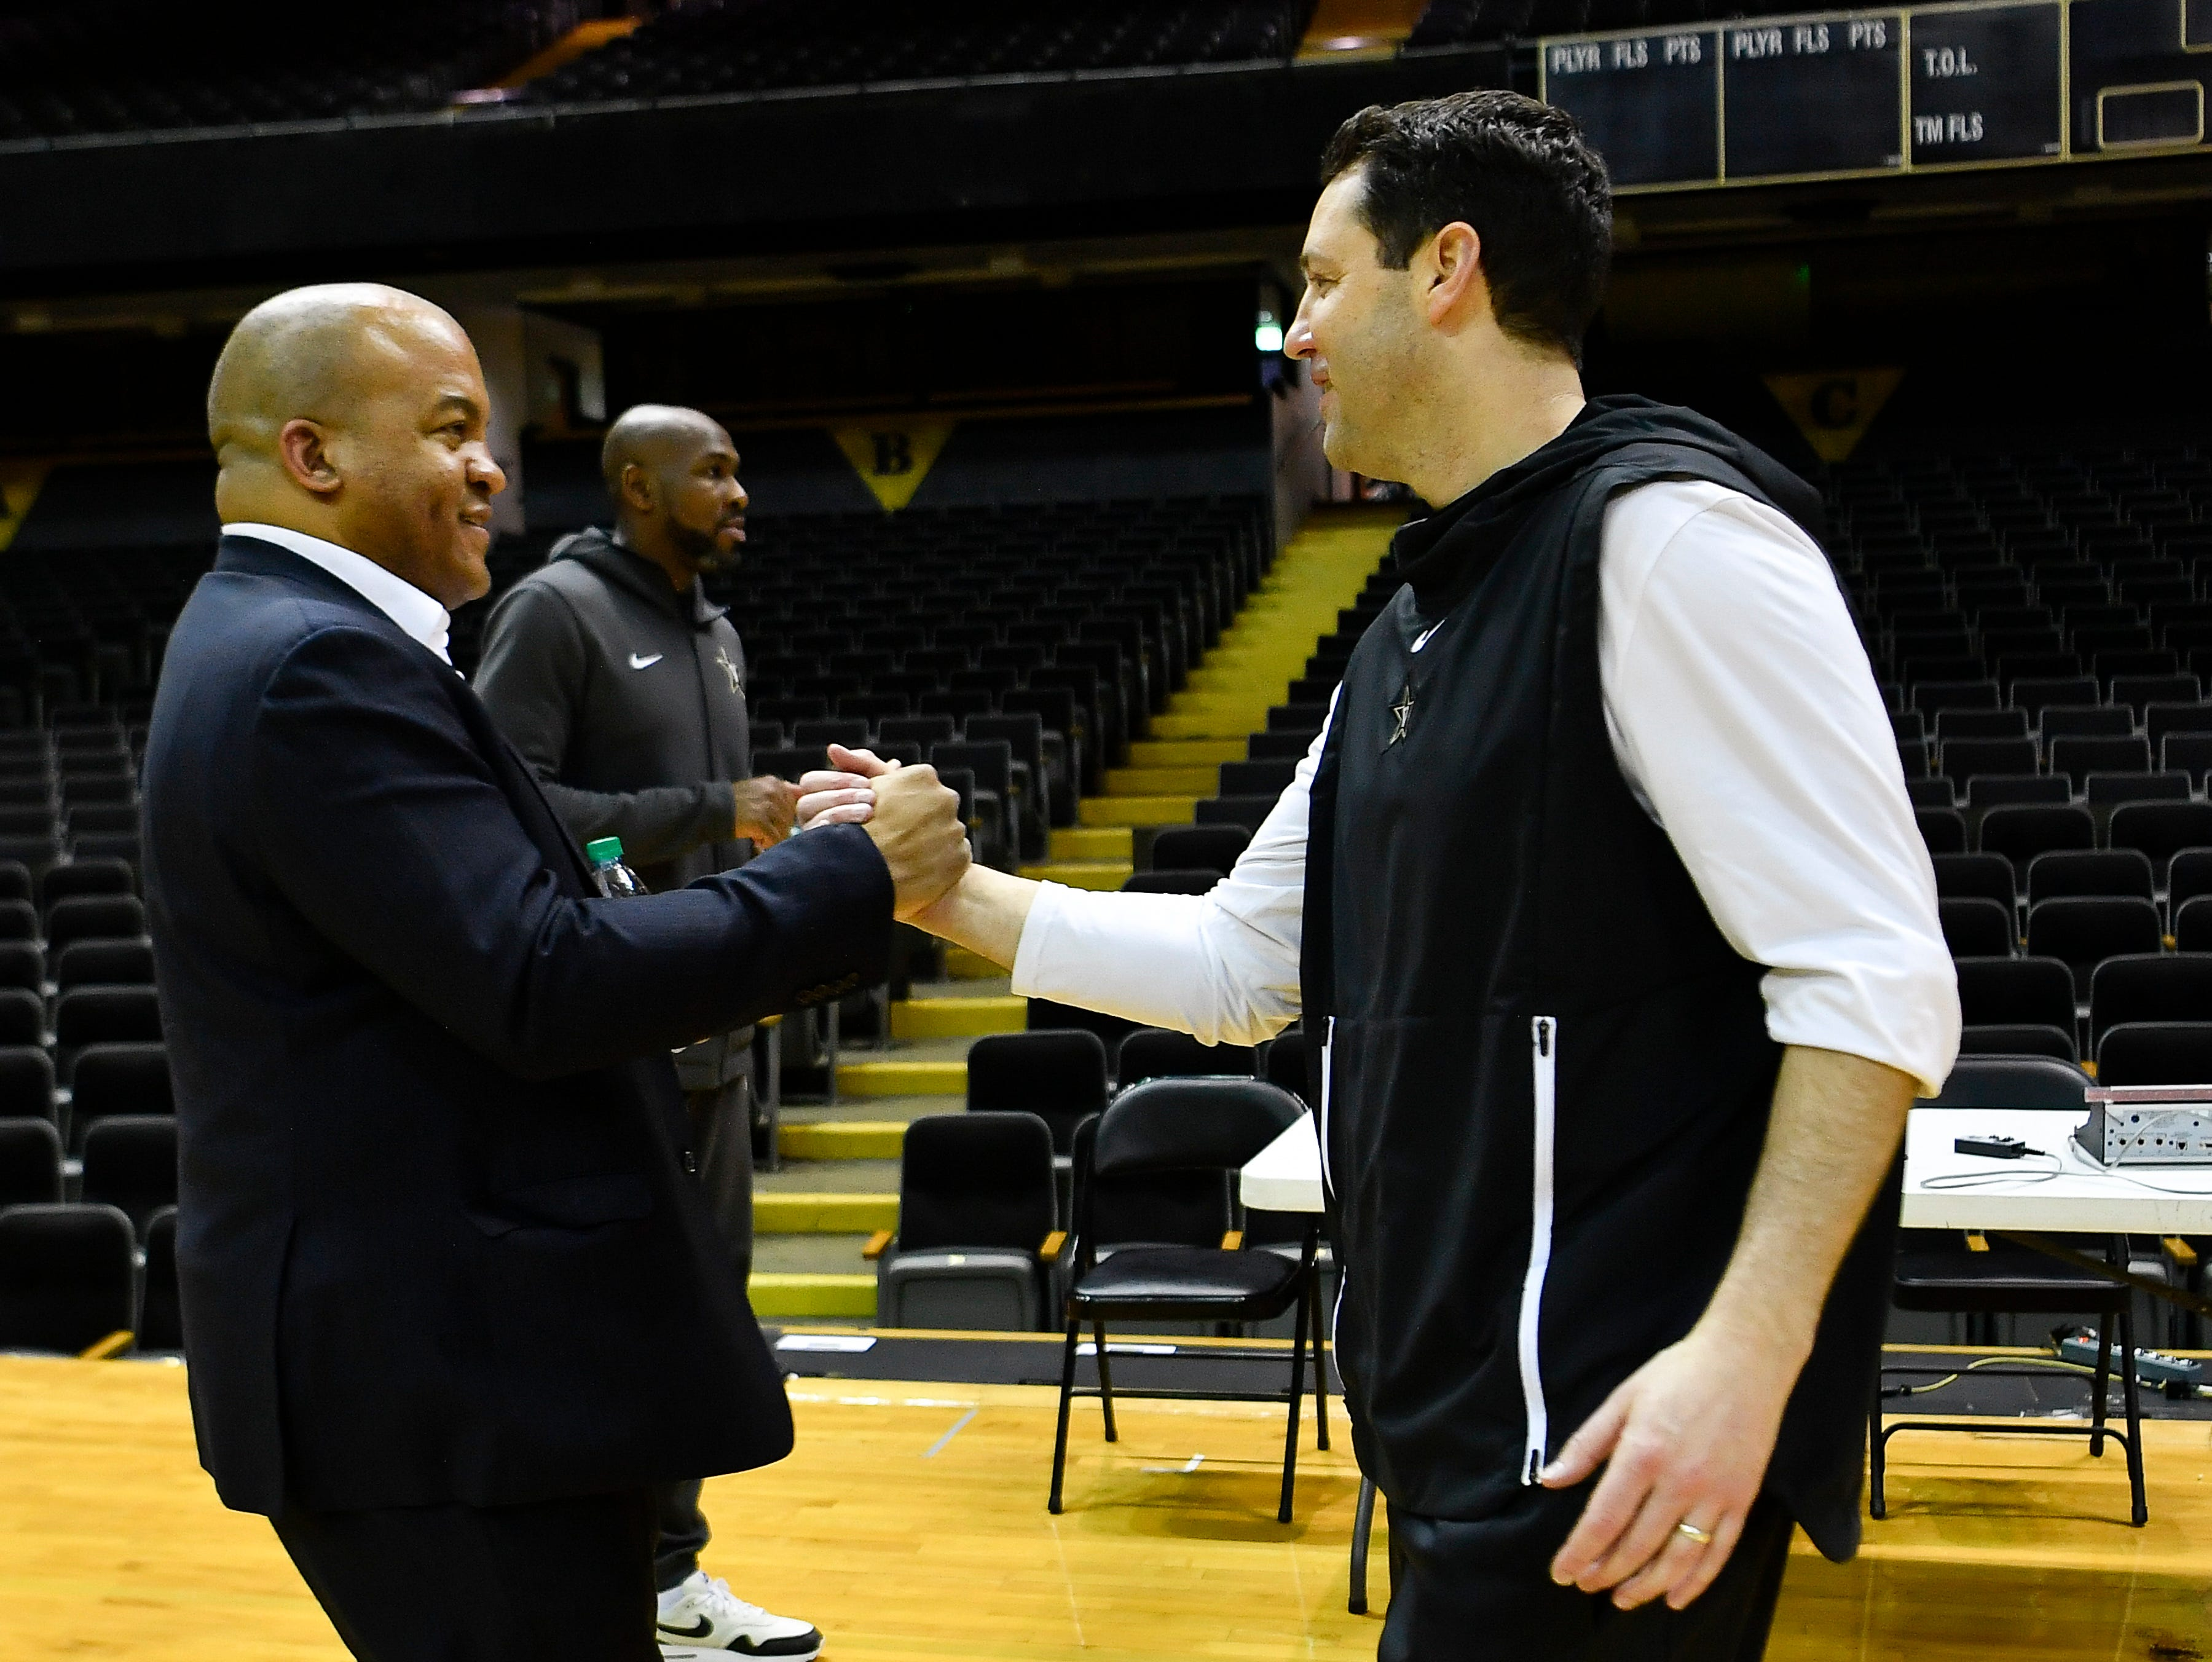 Vanderbilt's new athletic director Malcolm Turner shakes hands with basketball coach Bryce Drew as he visits with the athletic programs during his first day on campus Friday Feb. 1, 2019 in Nashville, Tenn.